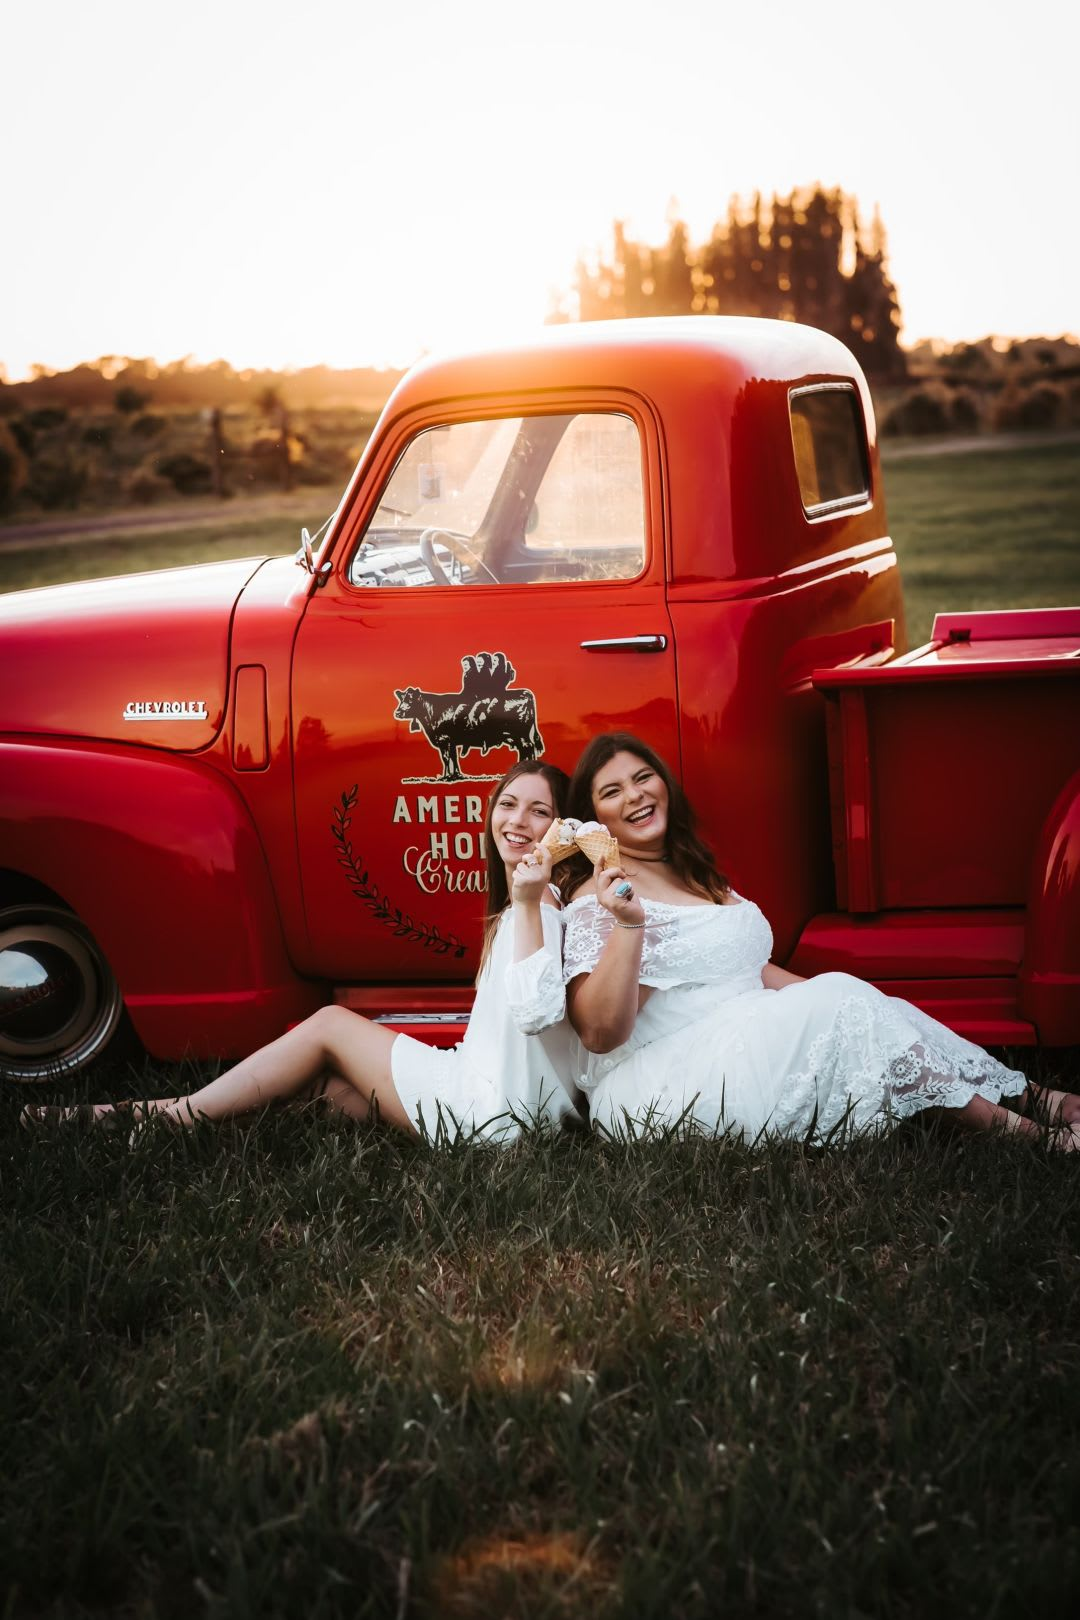 Palmetto Sisters Open Country Music-Inspired Ice Cream and Coffee Shop